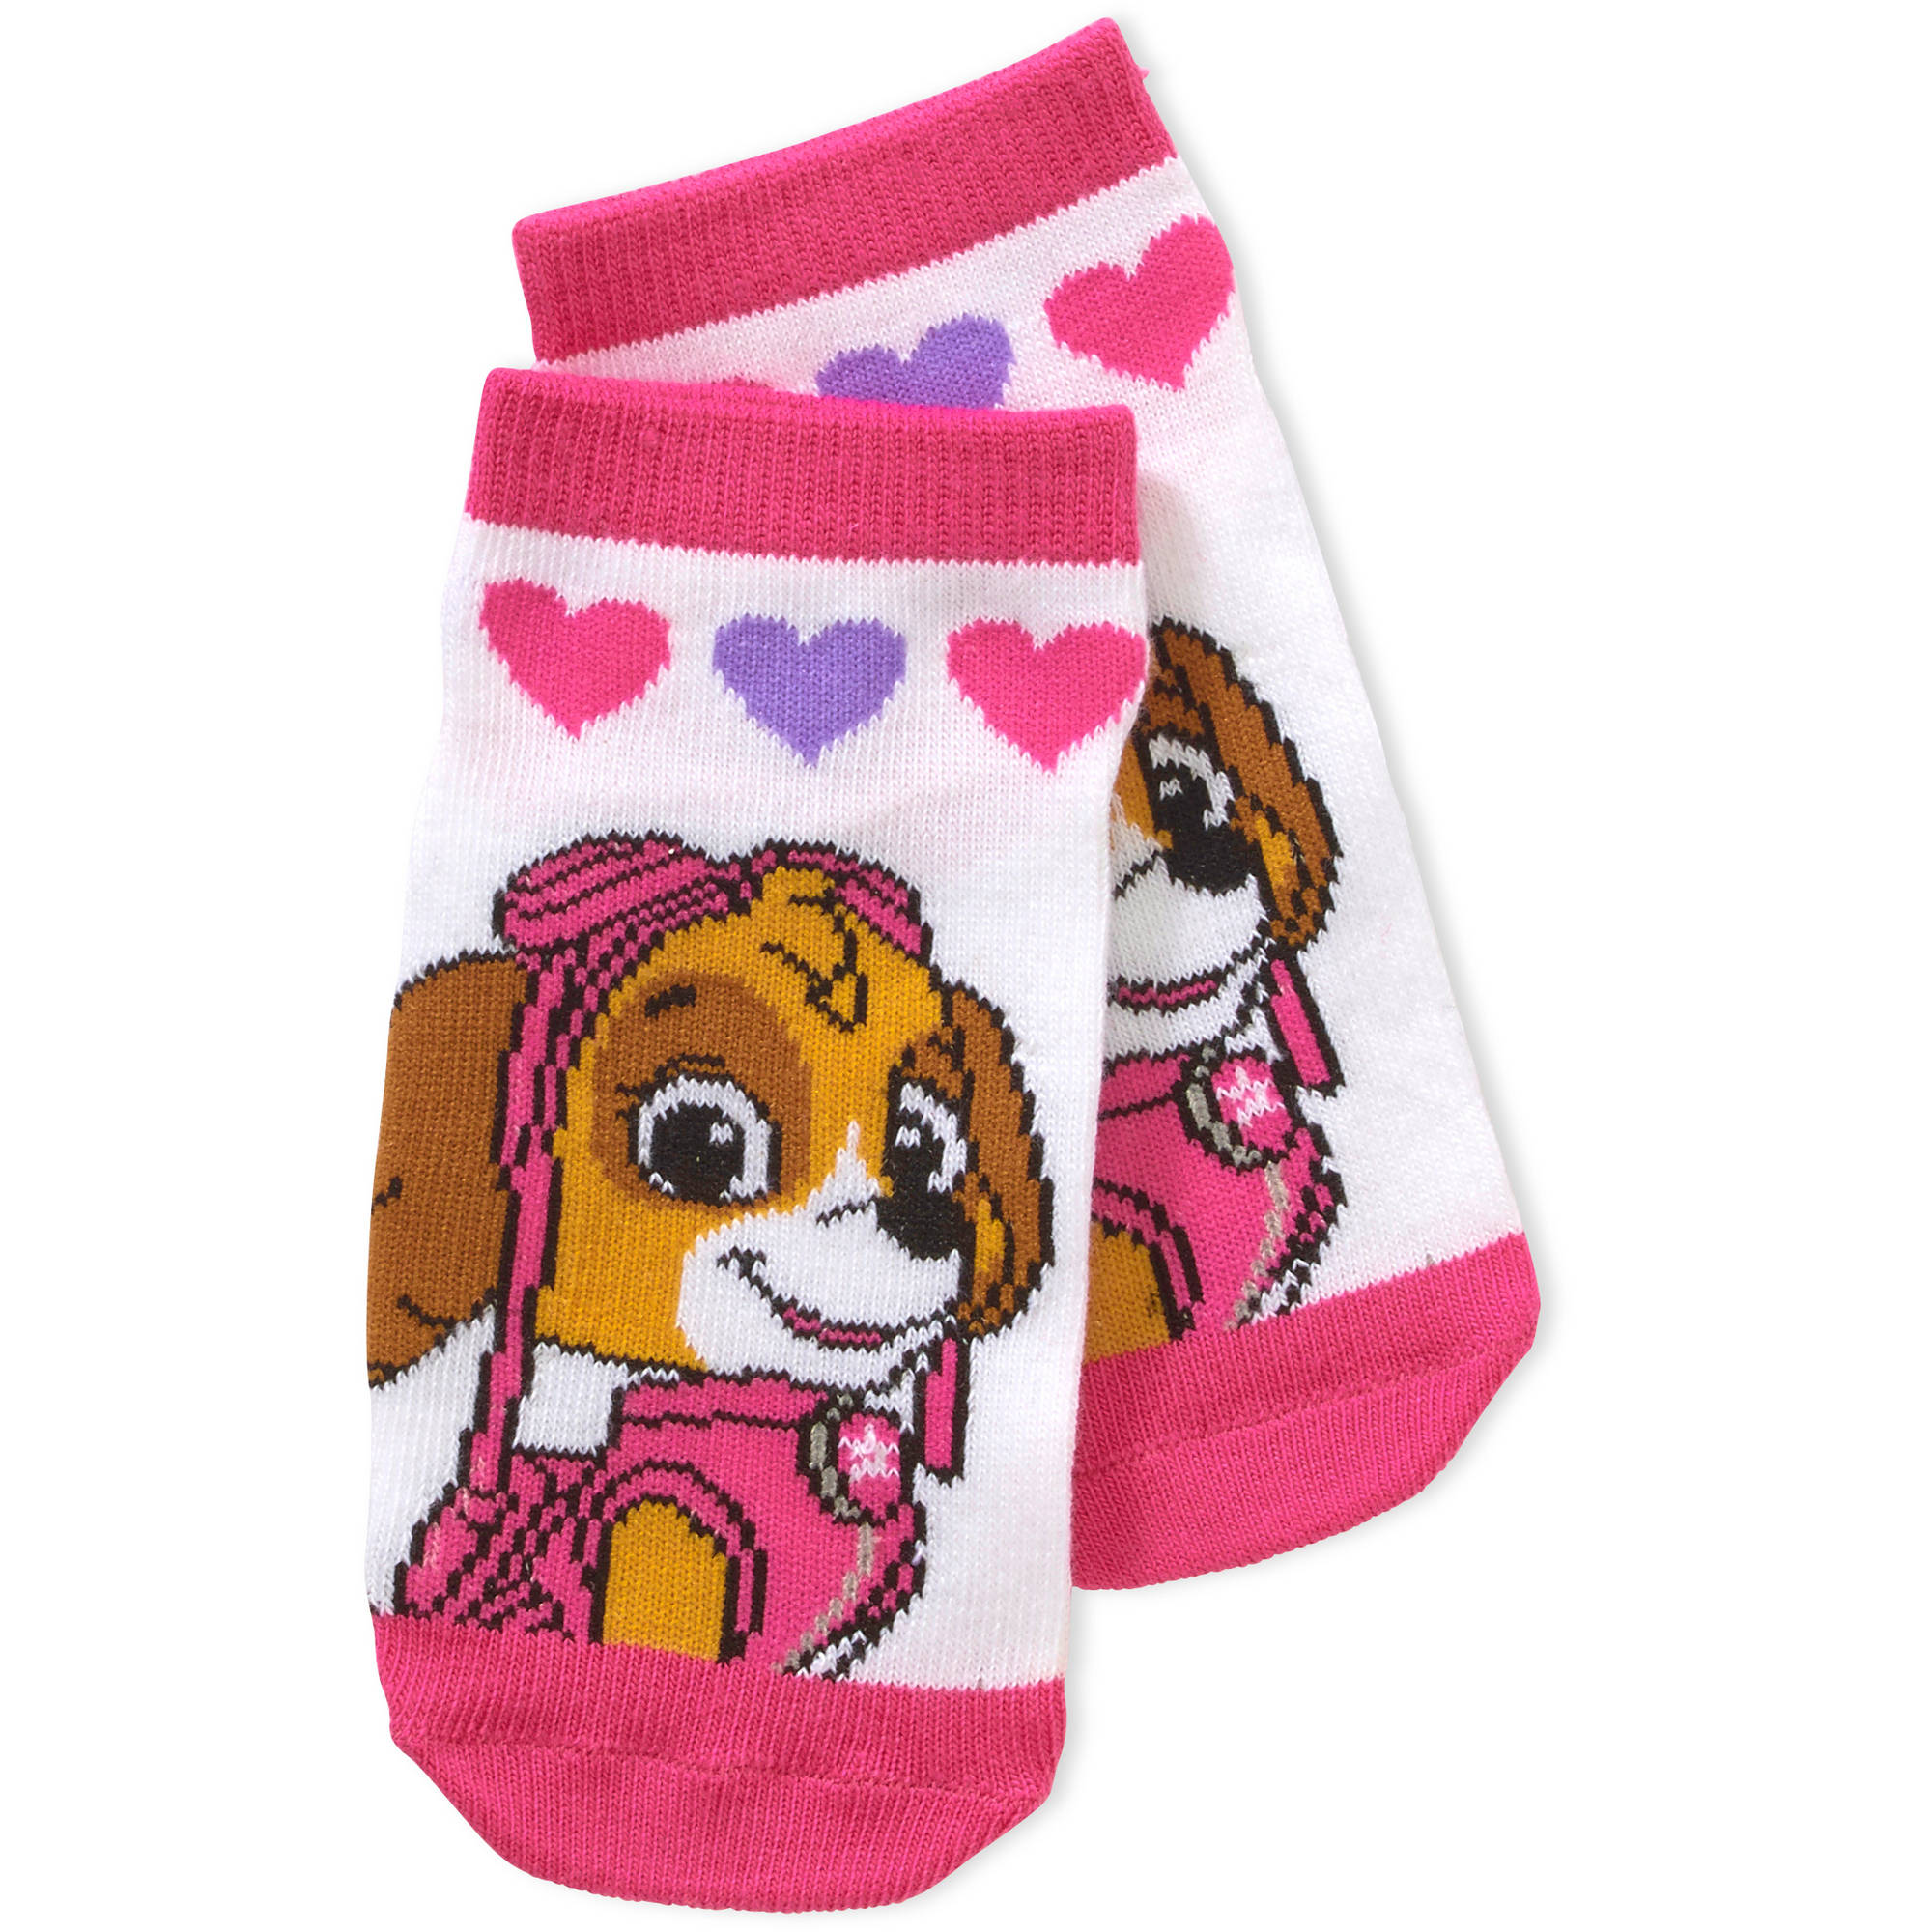 Nickelodeon Paw Patrol Toddler Girl No Show Socks, 3-Pack